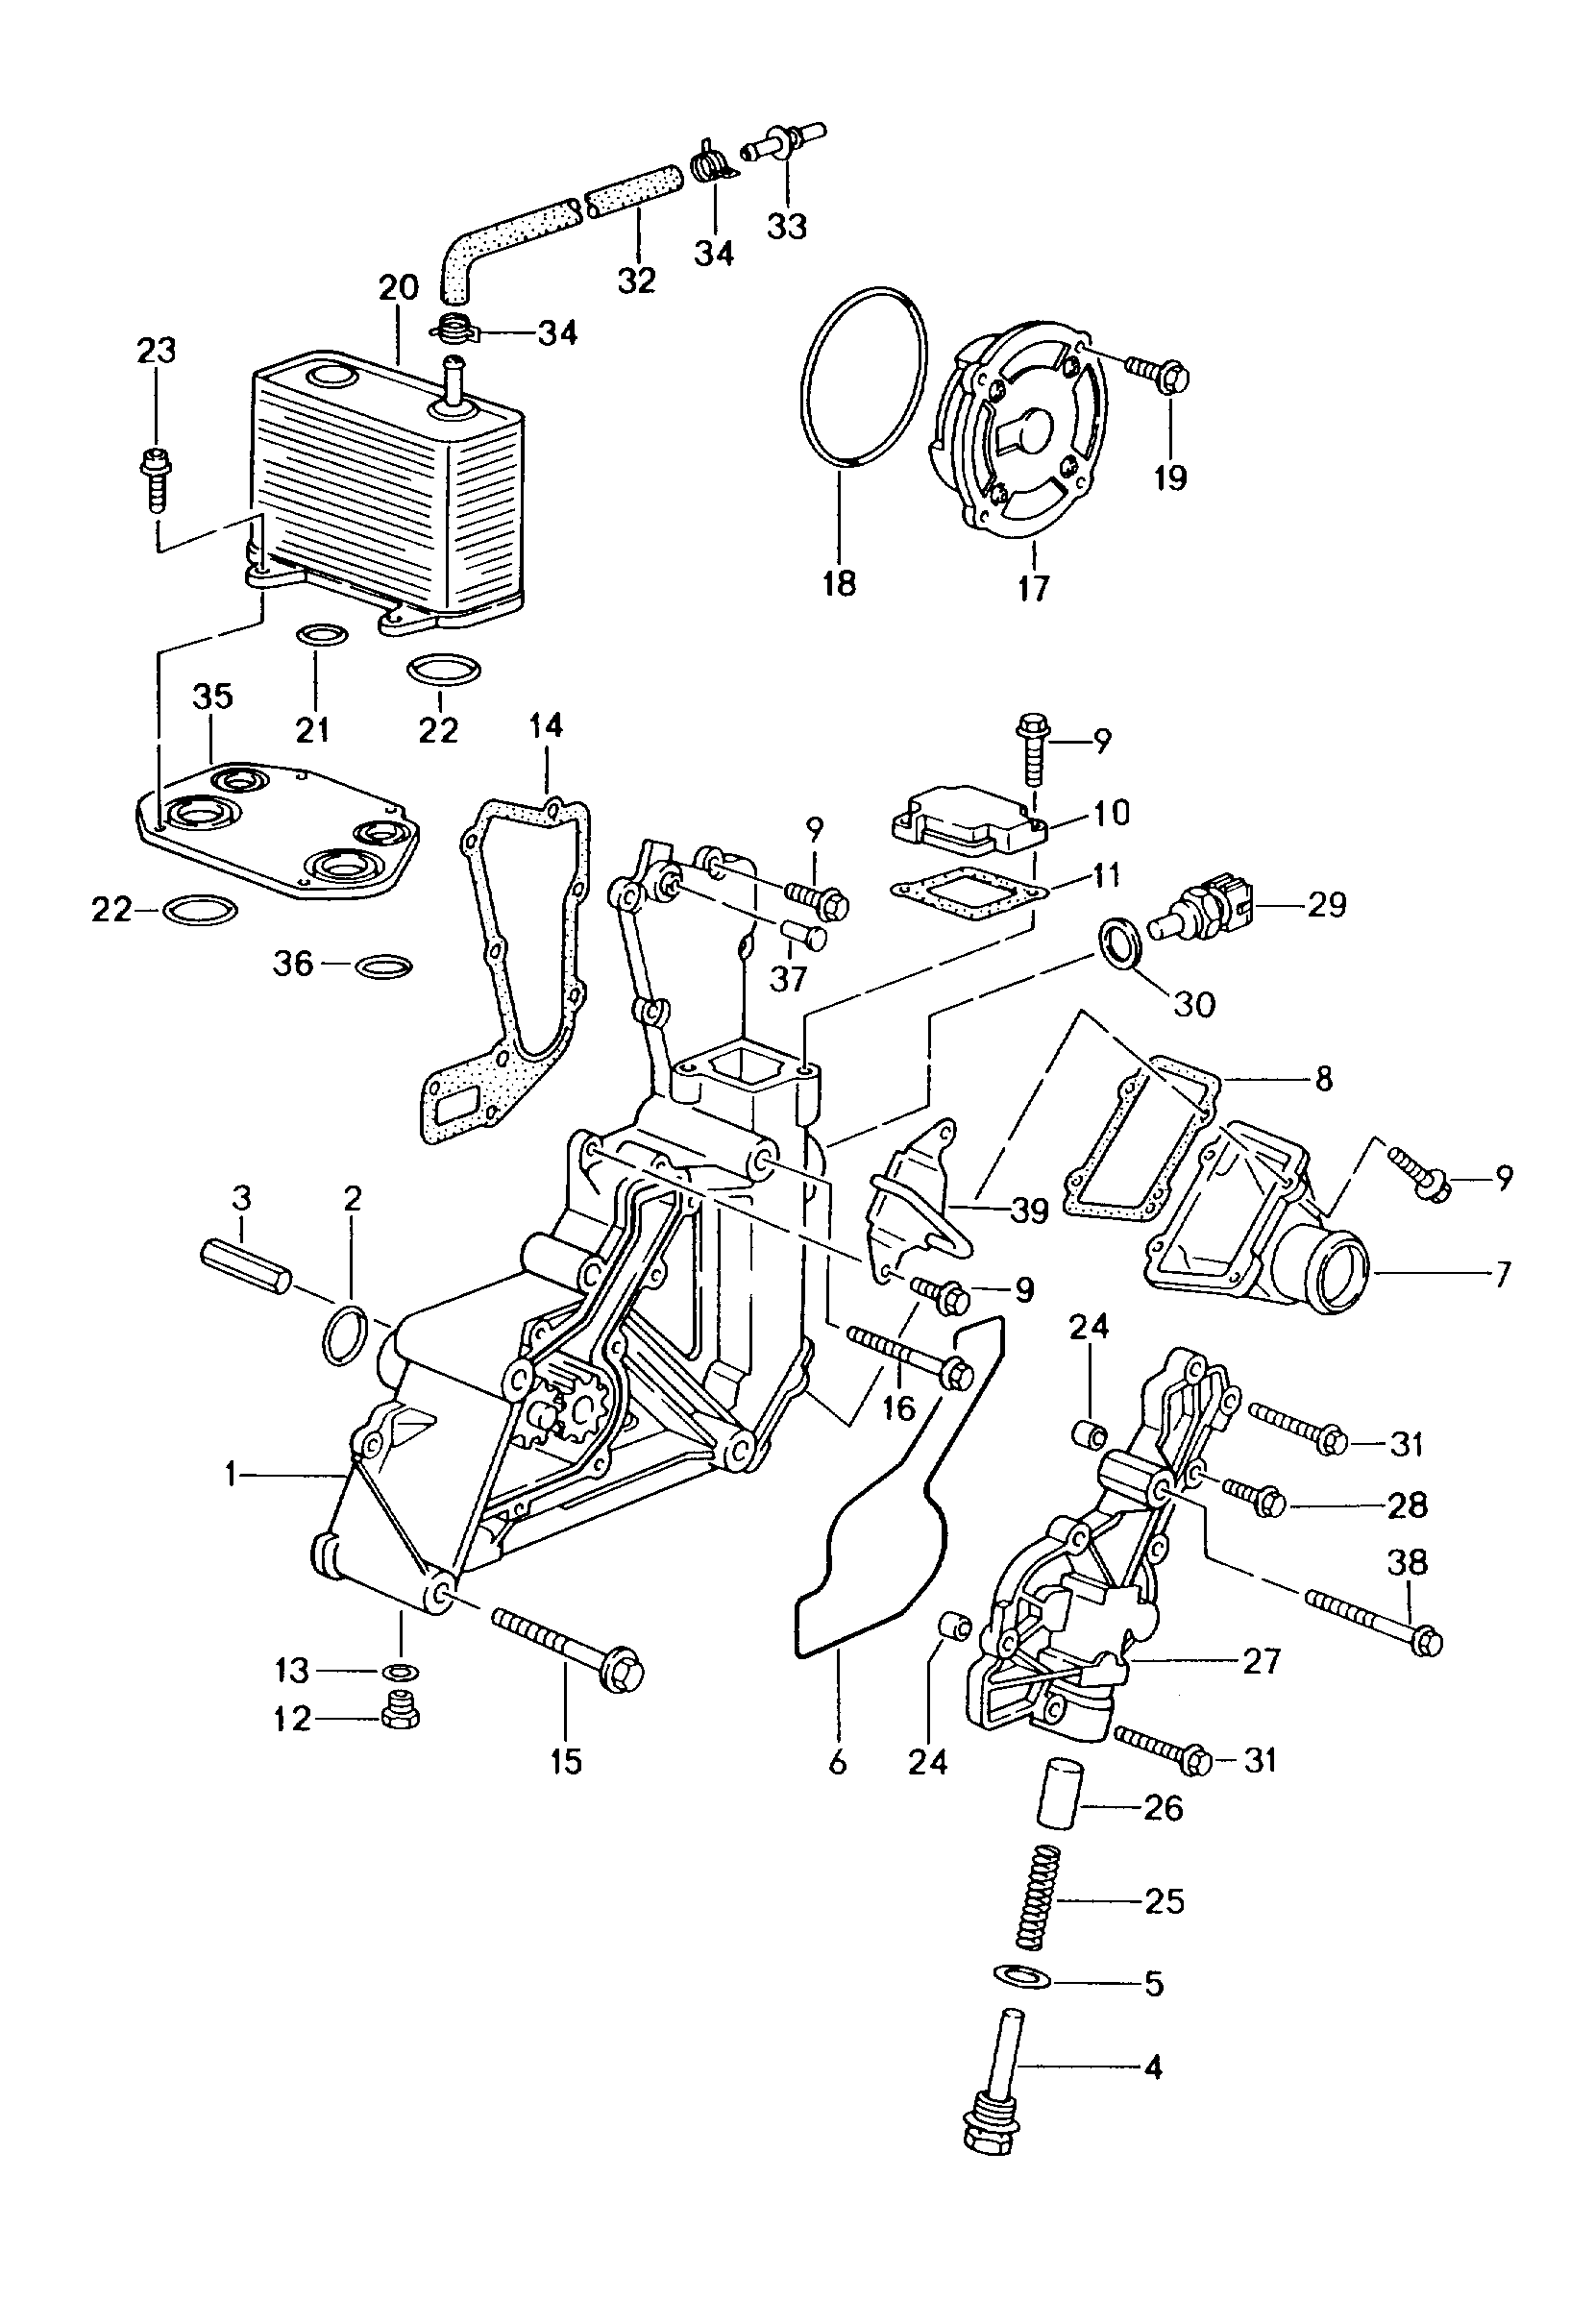 1999 Porsche Boxster Wiring Diagram Trusted Diagrams Engine 1997 Circuit U2022 2001